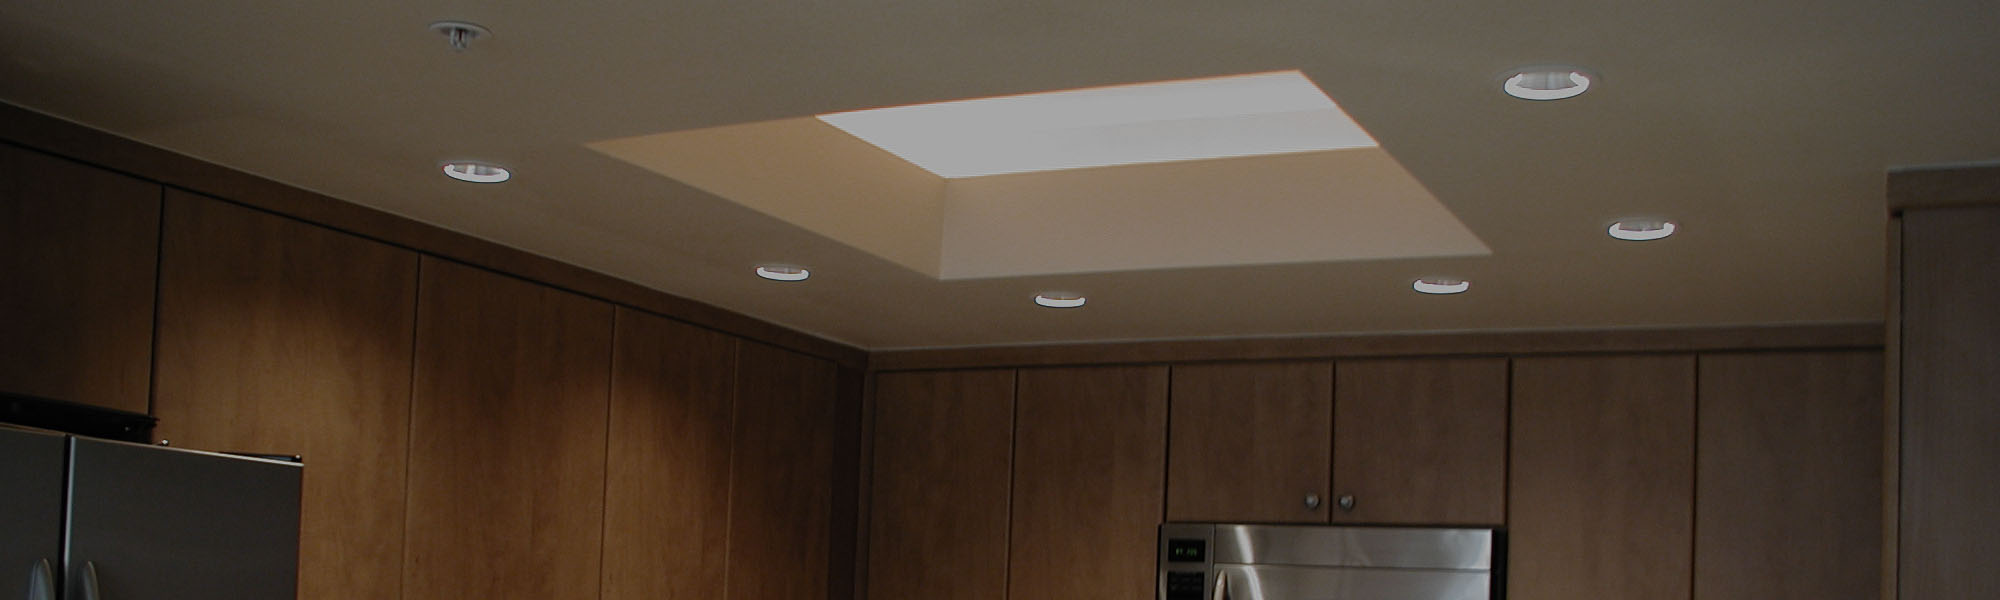 Recessed Lighting Installation Houston Texas Electrical Wiring A Can Light Residential Contractors Llc